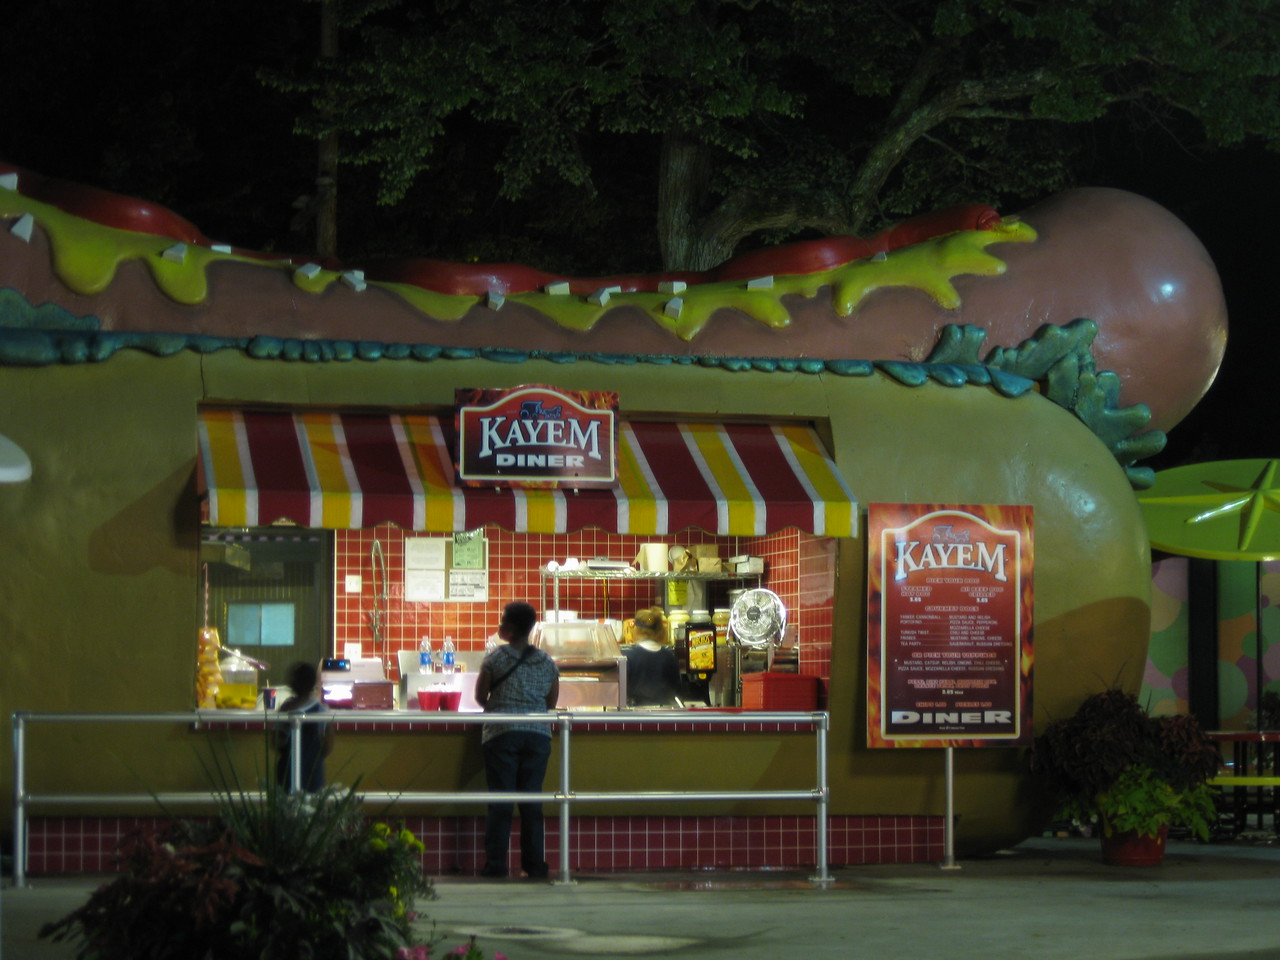 Kayem Diner hot dog stand at night.